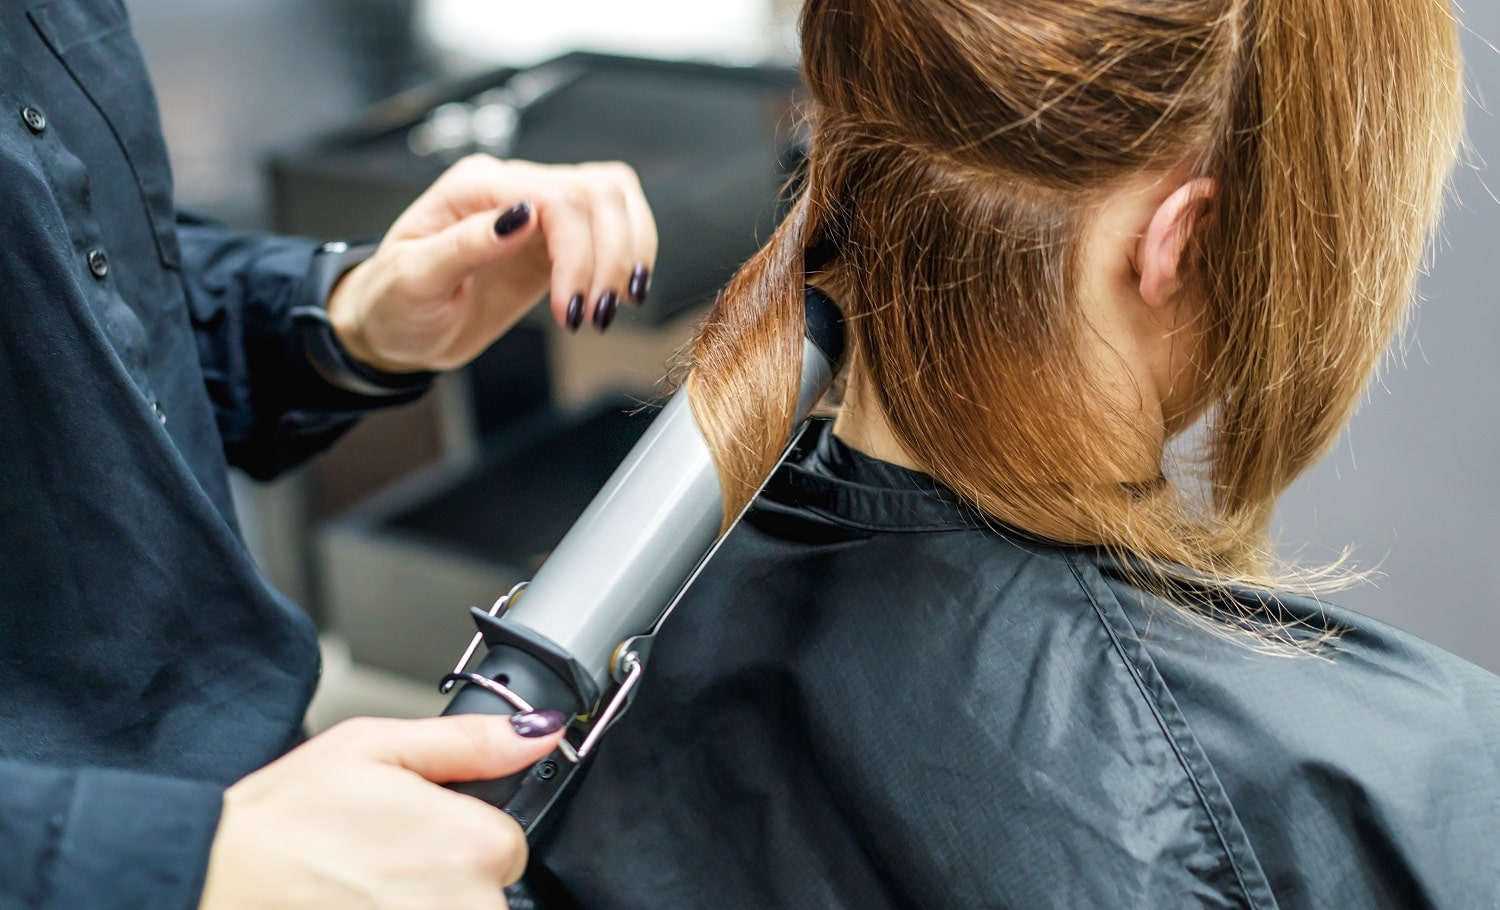 Hairdresser hand is curling women's hair with iron in beauty salon close up.